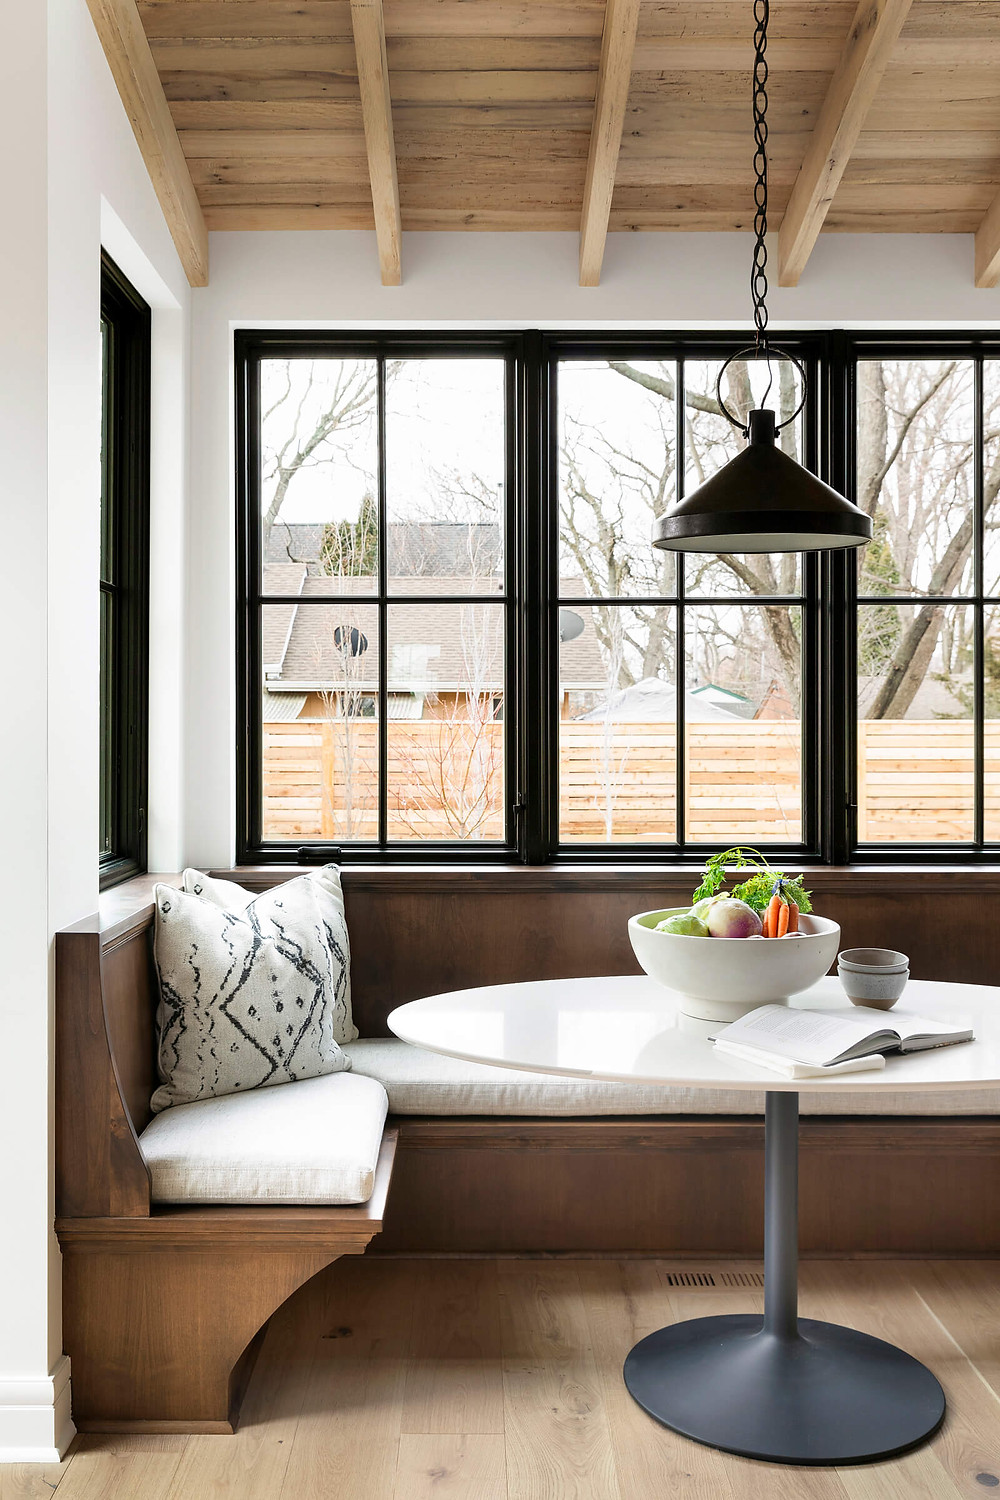 Custom breakfast dining nook banquette with reclaimed wood ceiling detail and large black grid windows